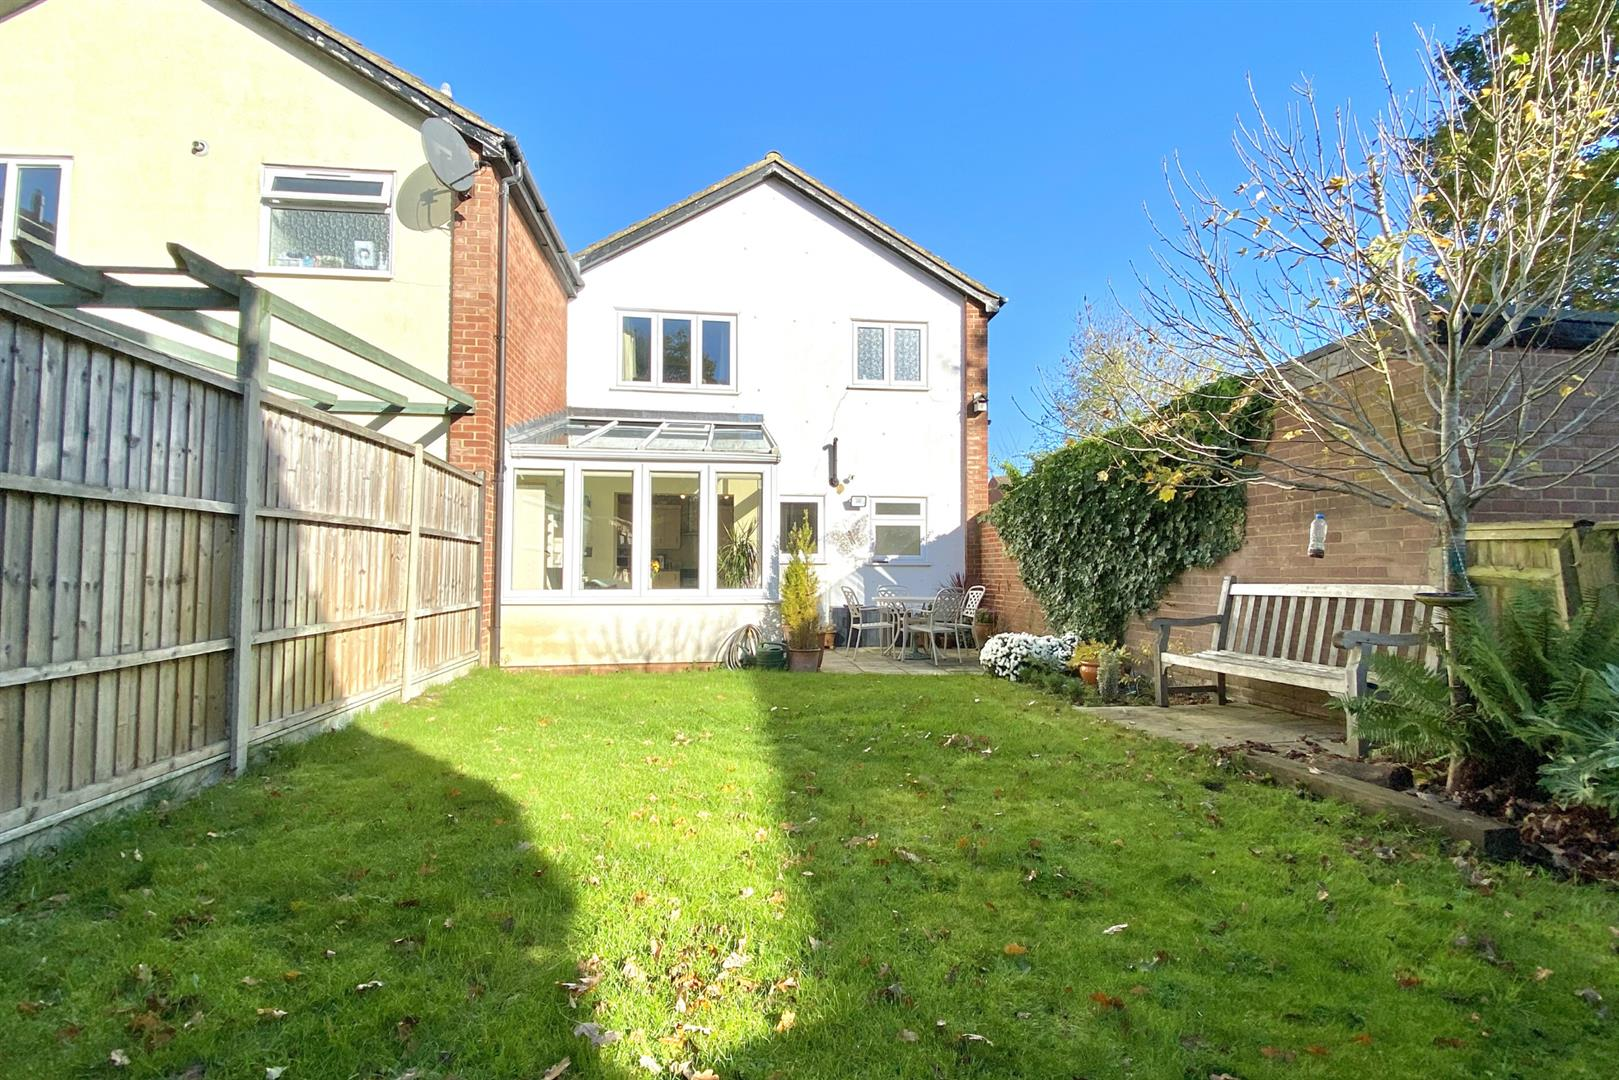 3 bed end of terrace for sale in Winnersh  - Property Image 14